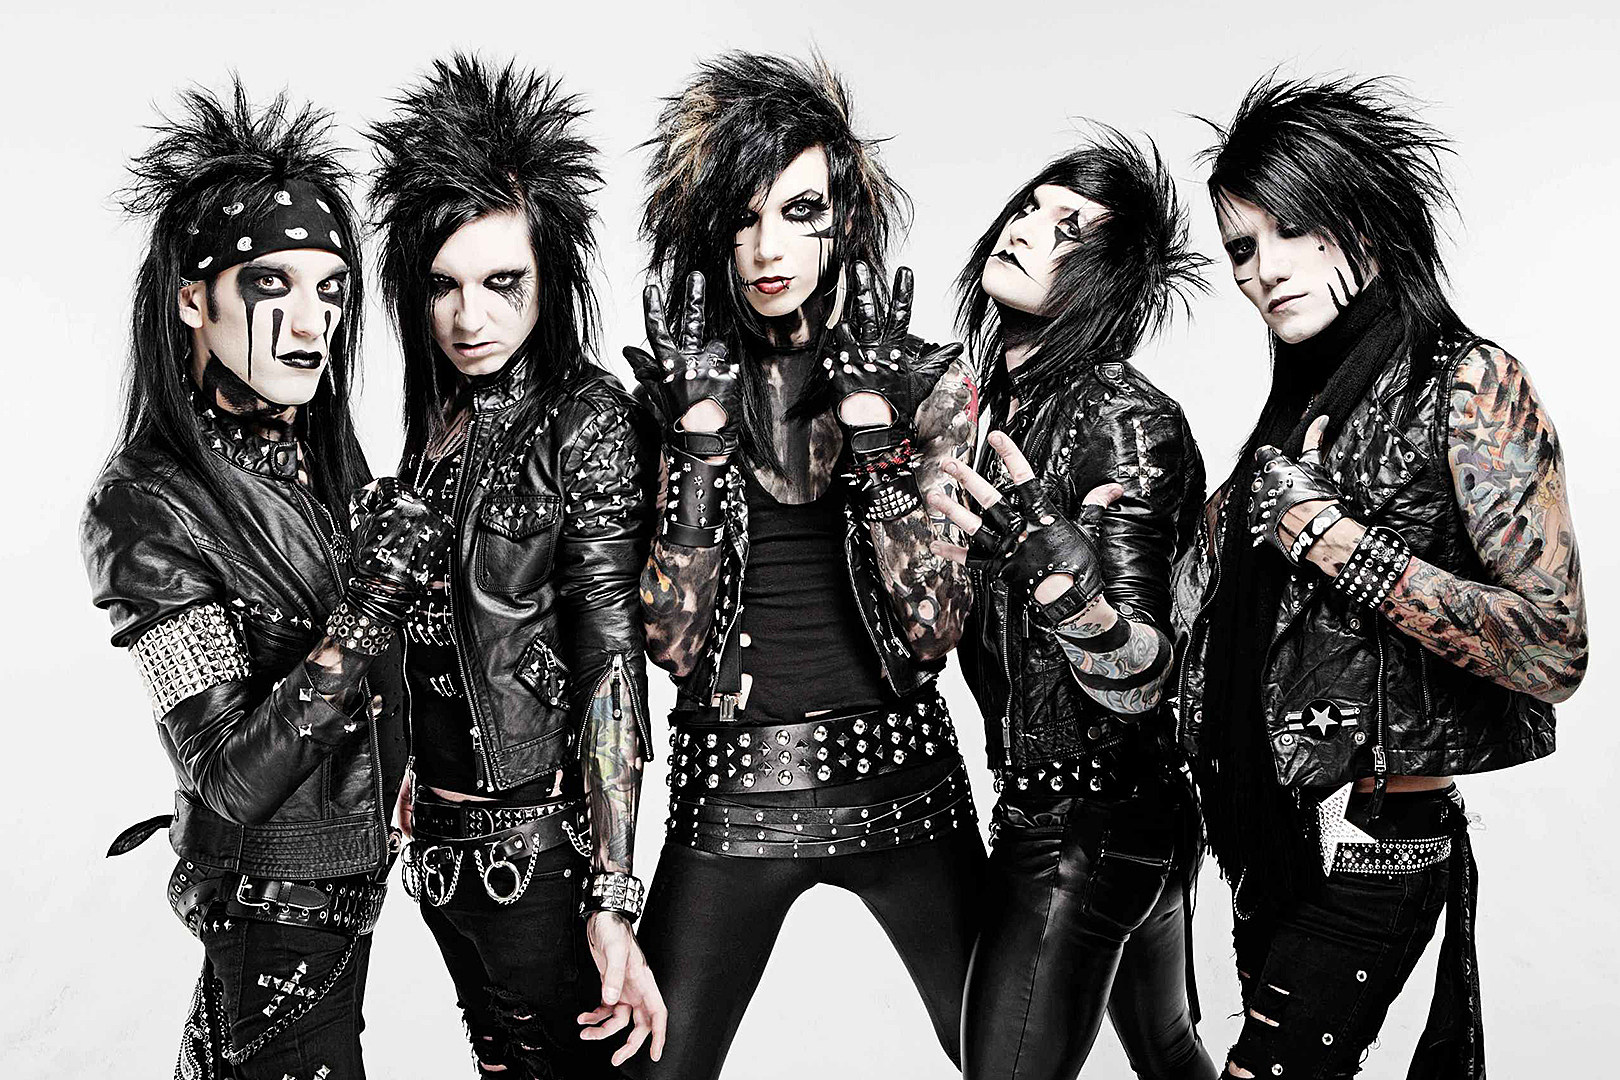 Black Veil Brides New Album 2020 Andy Biersack Doesn't Know 'Next Chapter' for Black Veil Brides